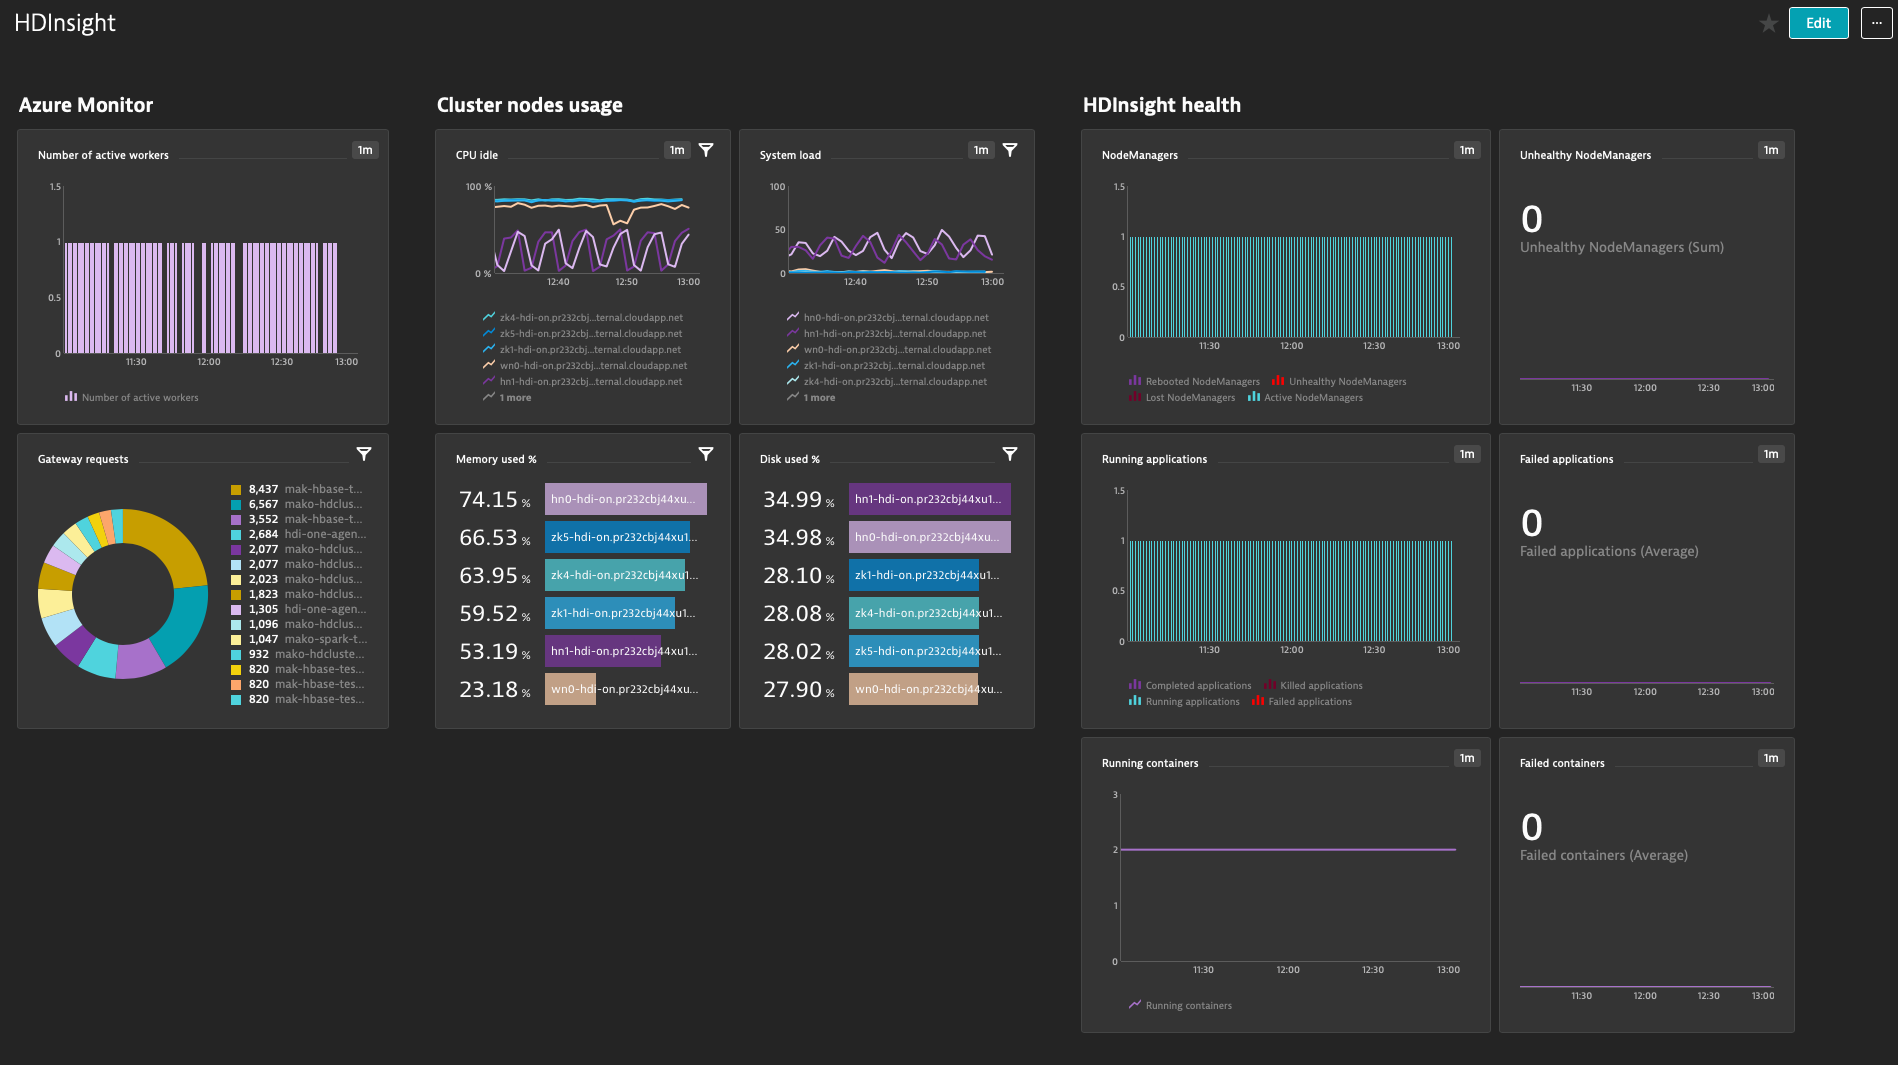 Azure HDInsights dashboard